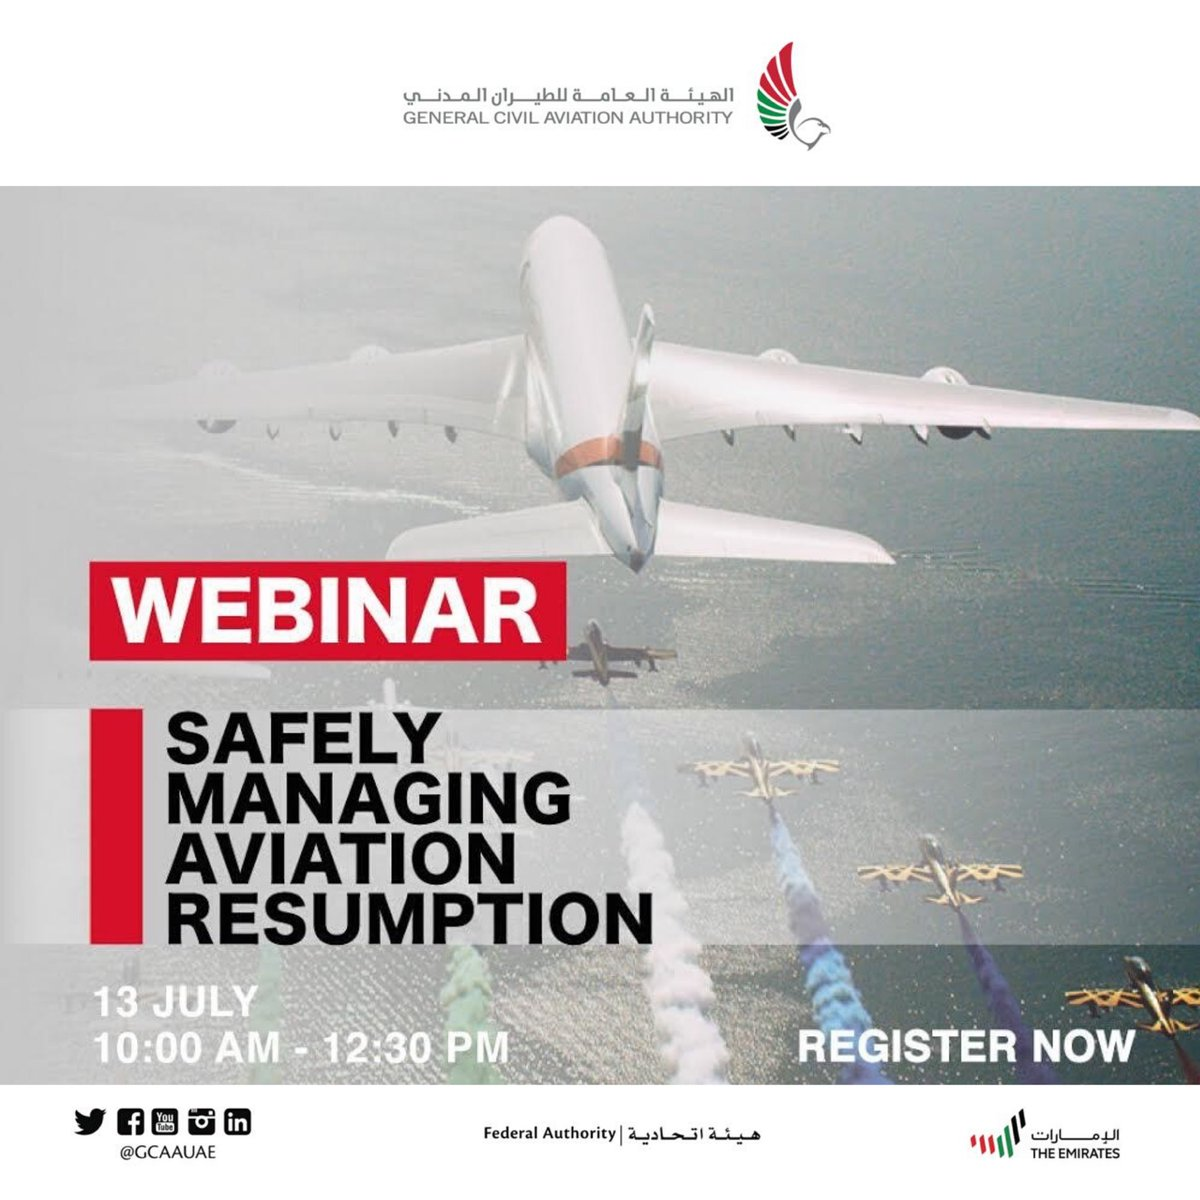 "1️⃣ The General Civil Aviation Authority invites you to attend webinar⁣⁣ ""Safely Managing Aviation Resumption"" Organized by the Aviation Safety Affairs Sector to gain insights from industry experts for the ongoing critical phase of restarting aviation safely. https://t.co/TmFROcJH49"